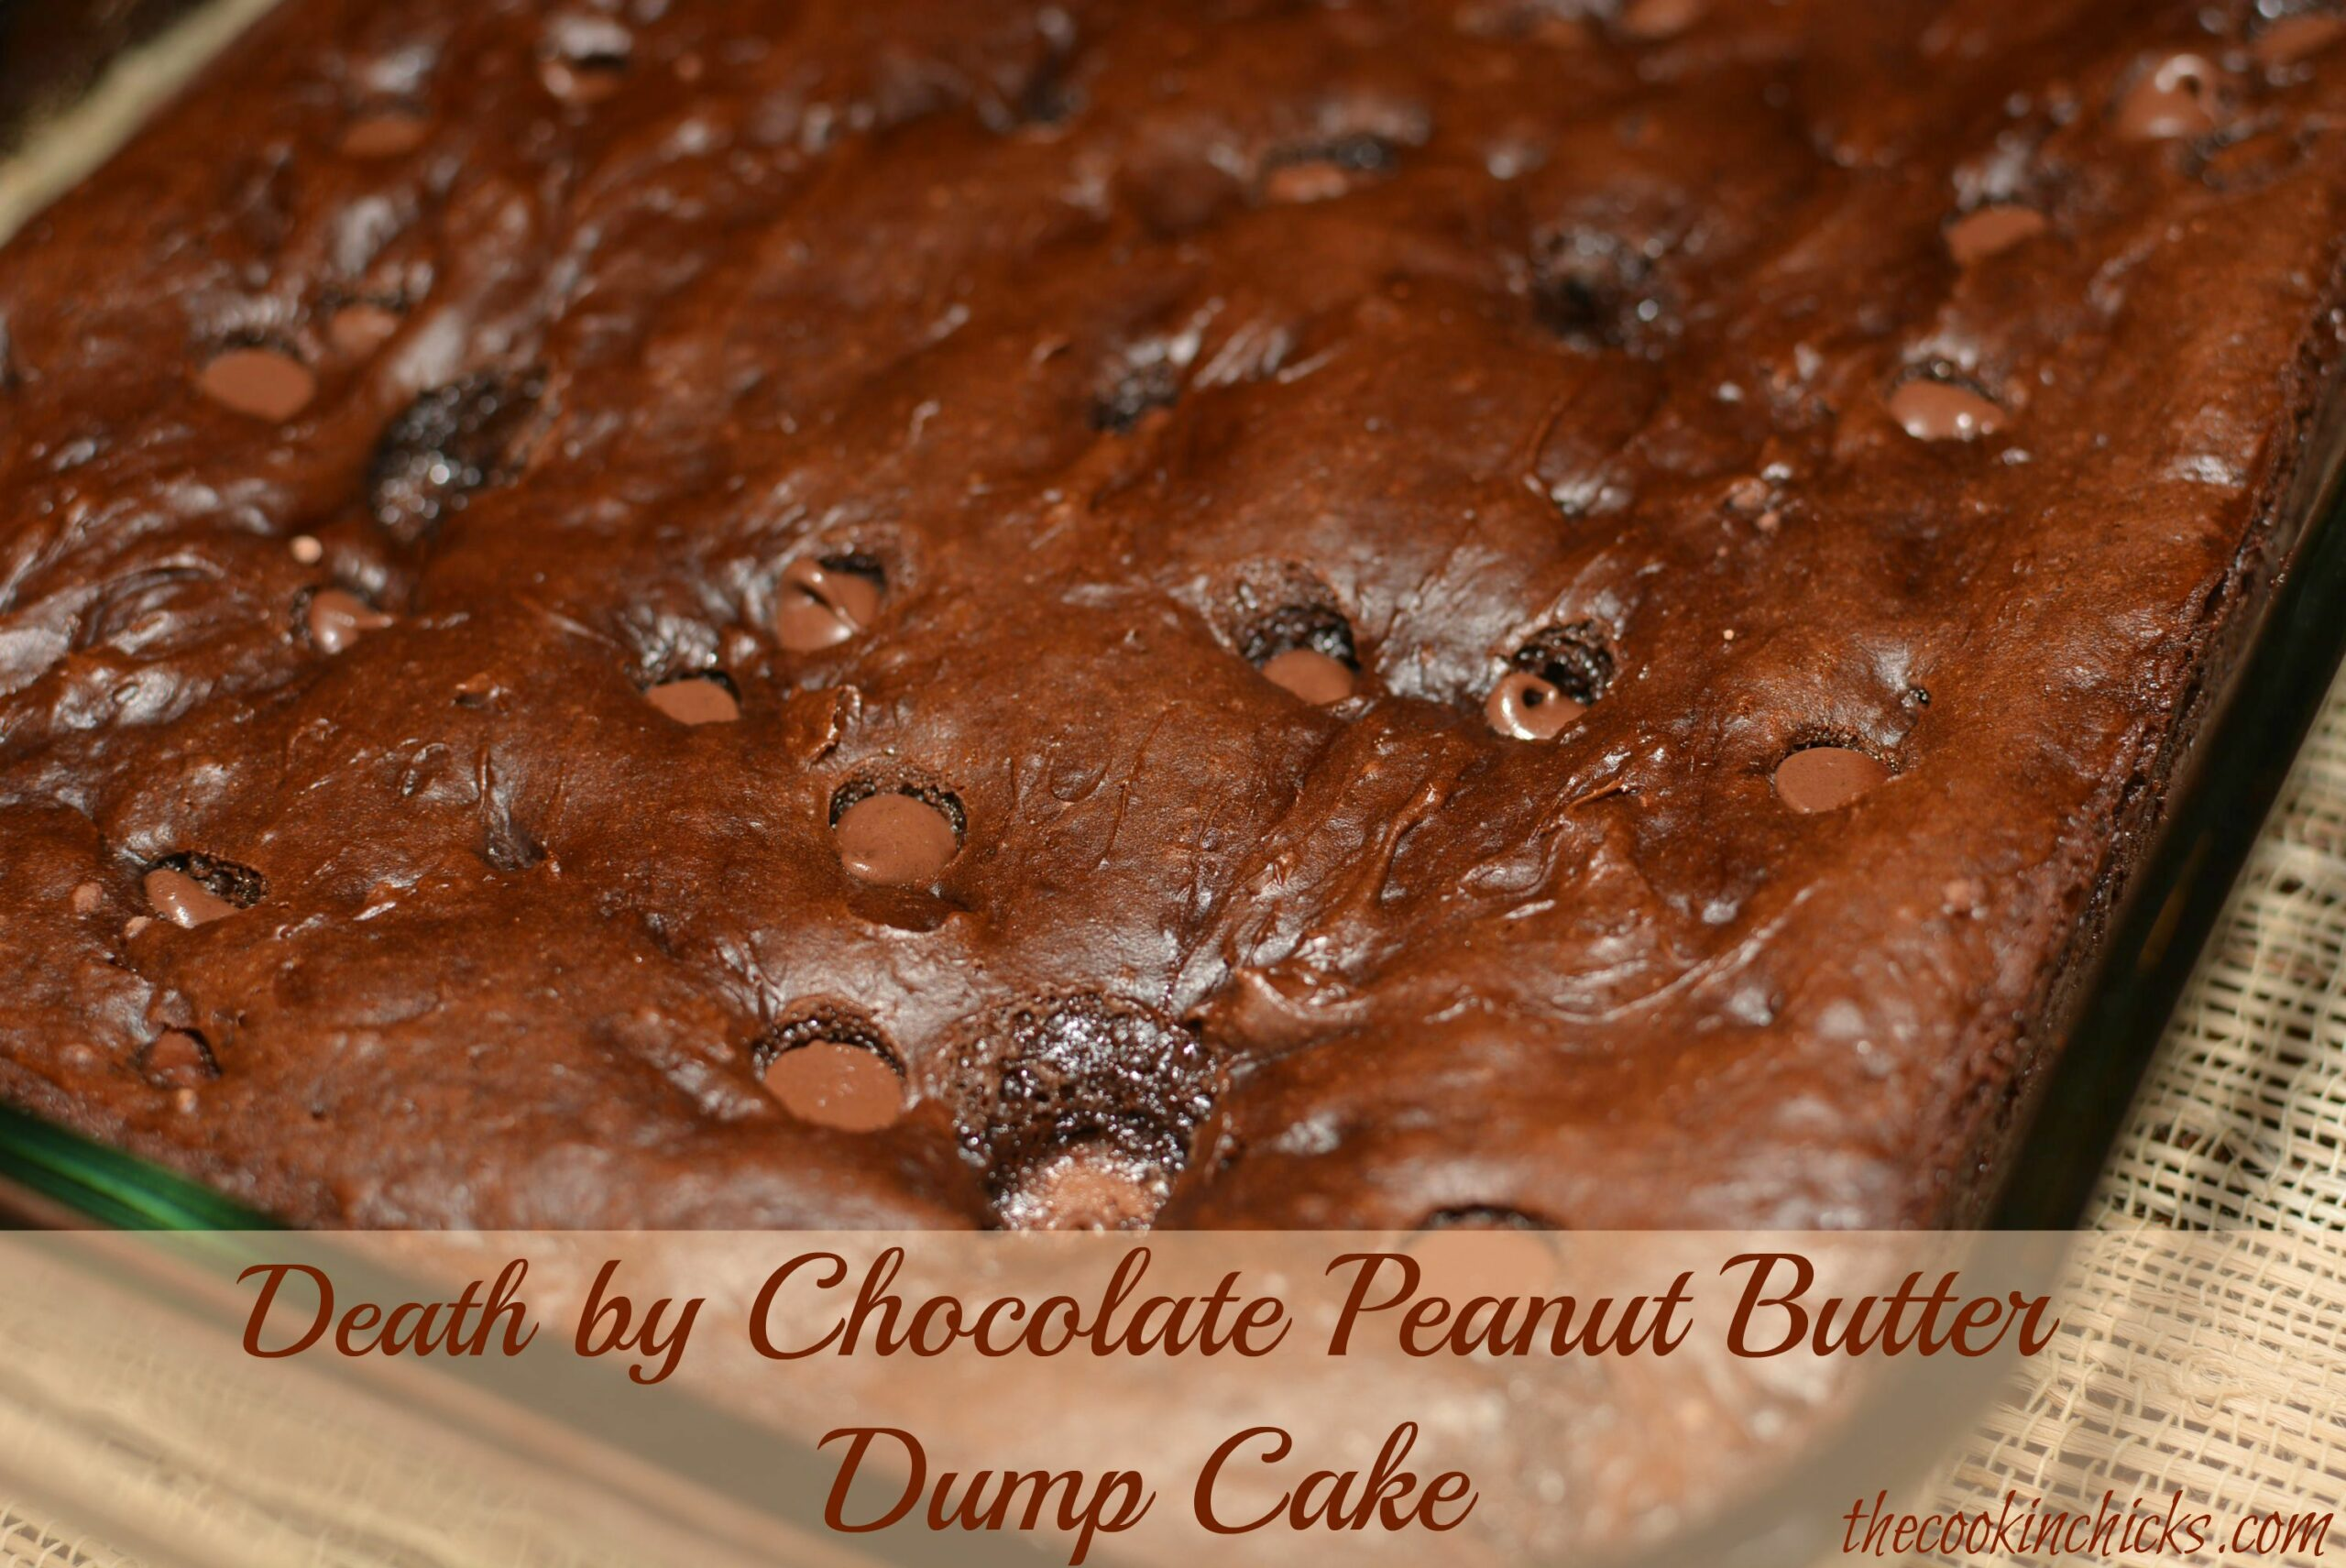 Chocolate Dump Cake With Peanut Butter Chips